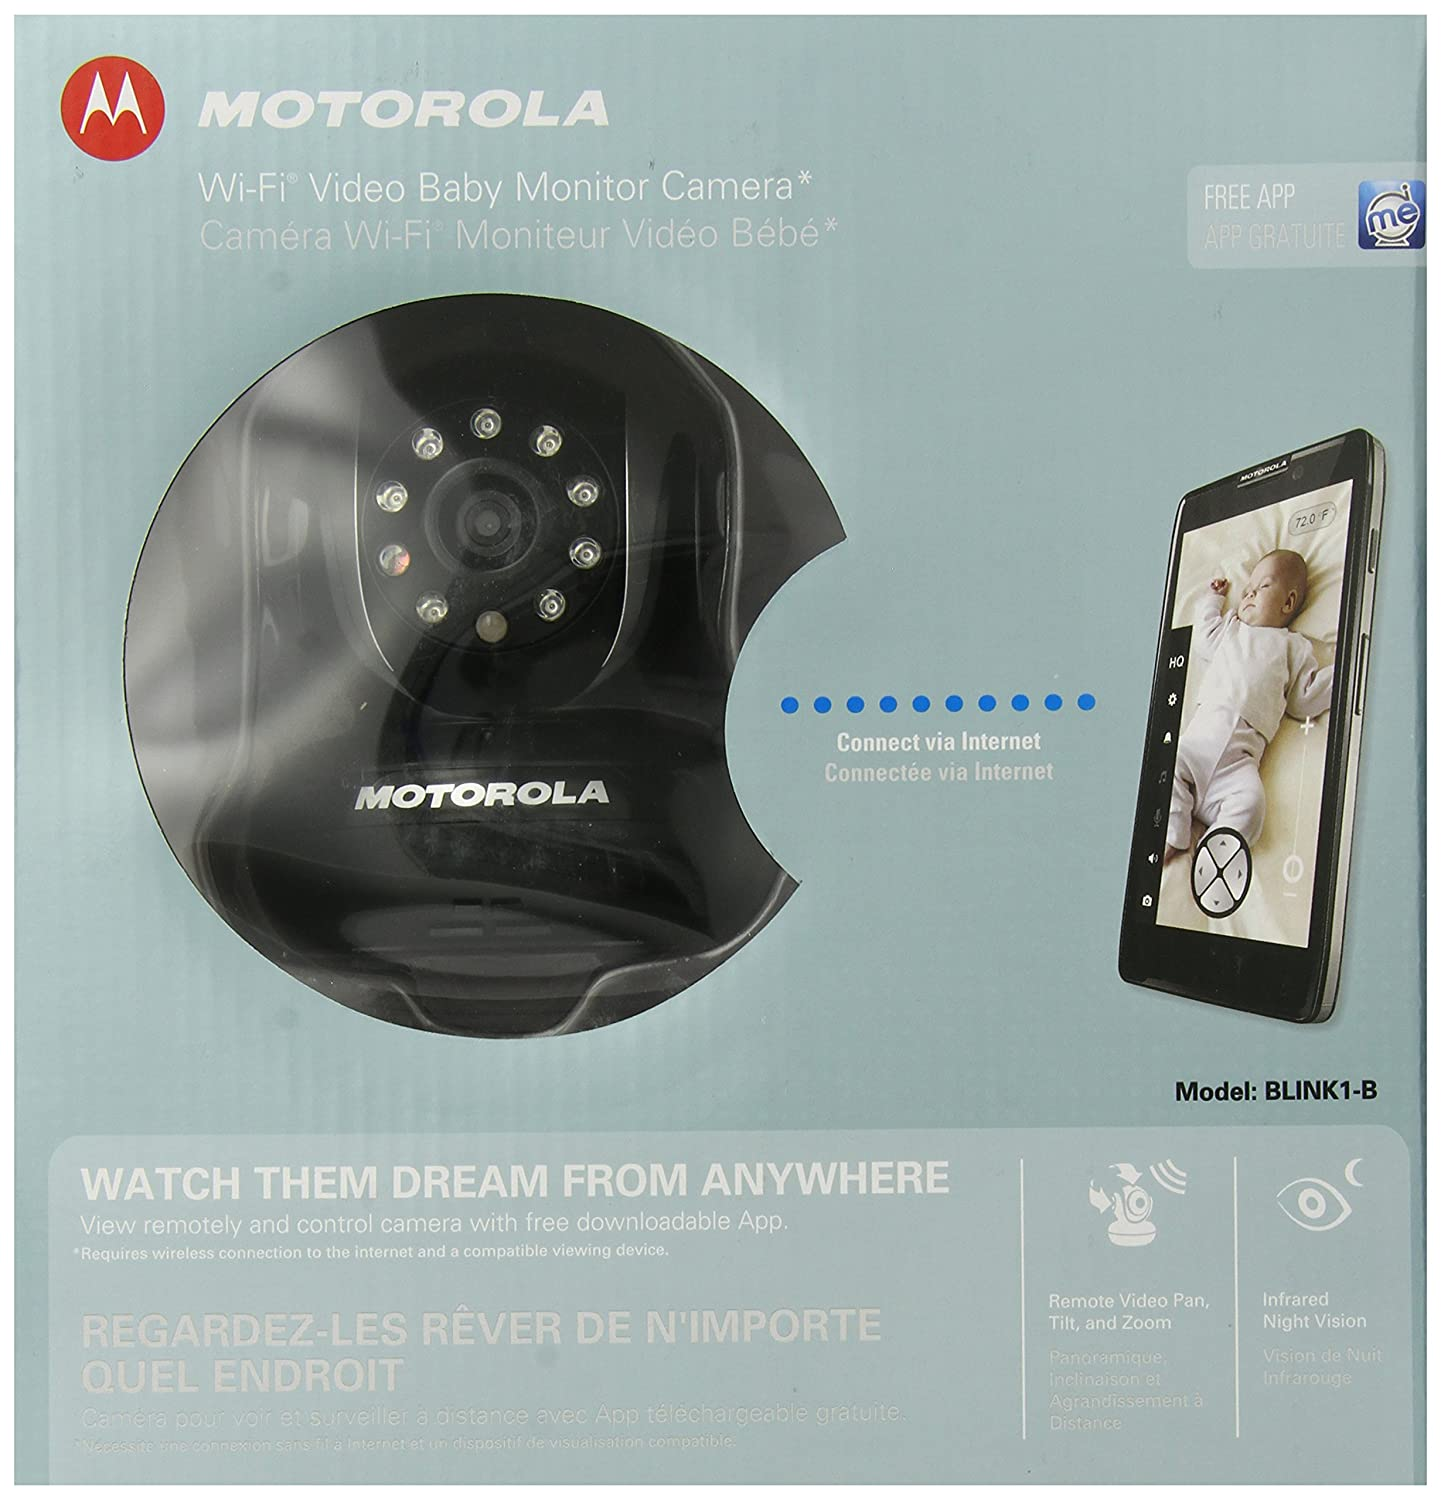 Motorola Blink1 Wi-Fi Video Camera for Remote Viewing with iPhone and Android Smartphones and Tablets, Black